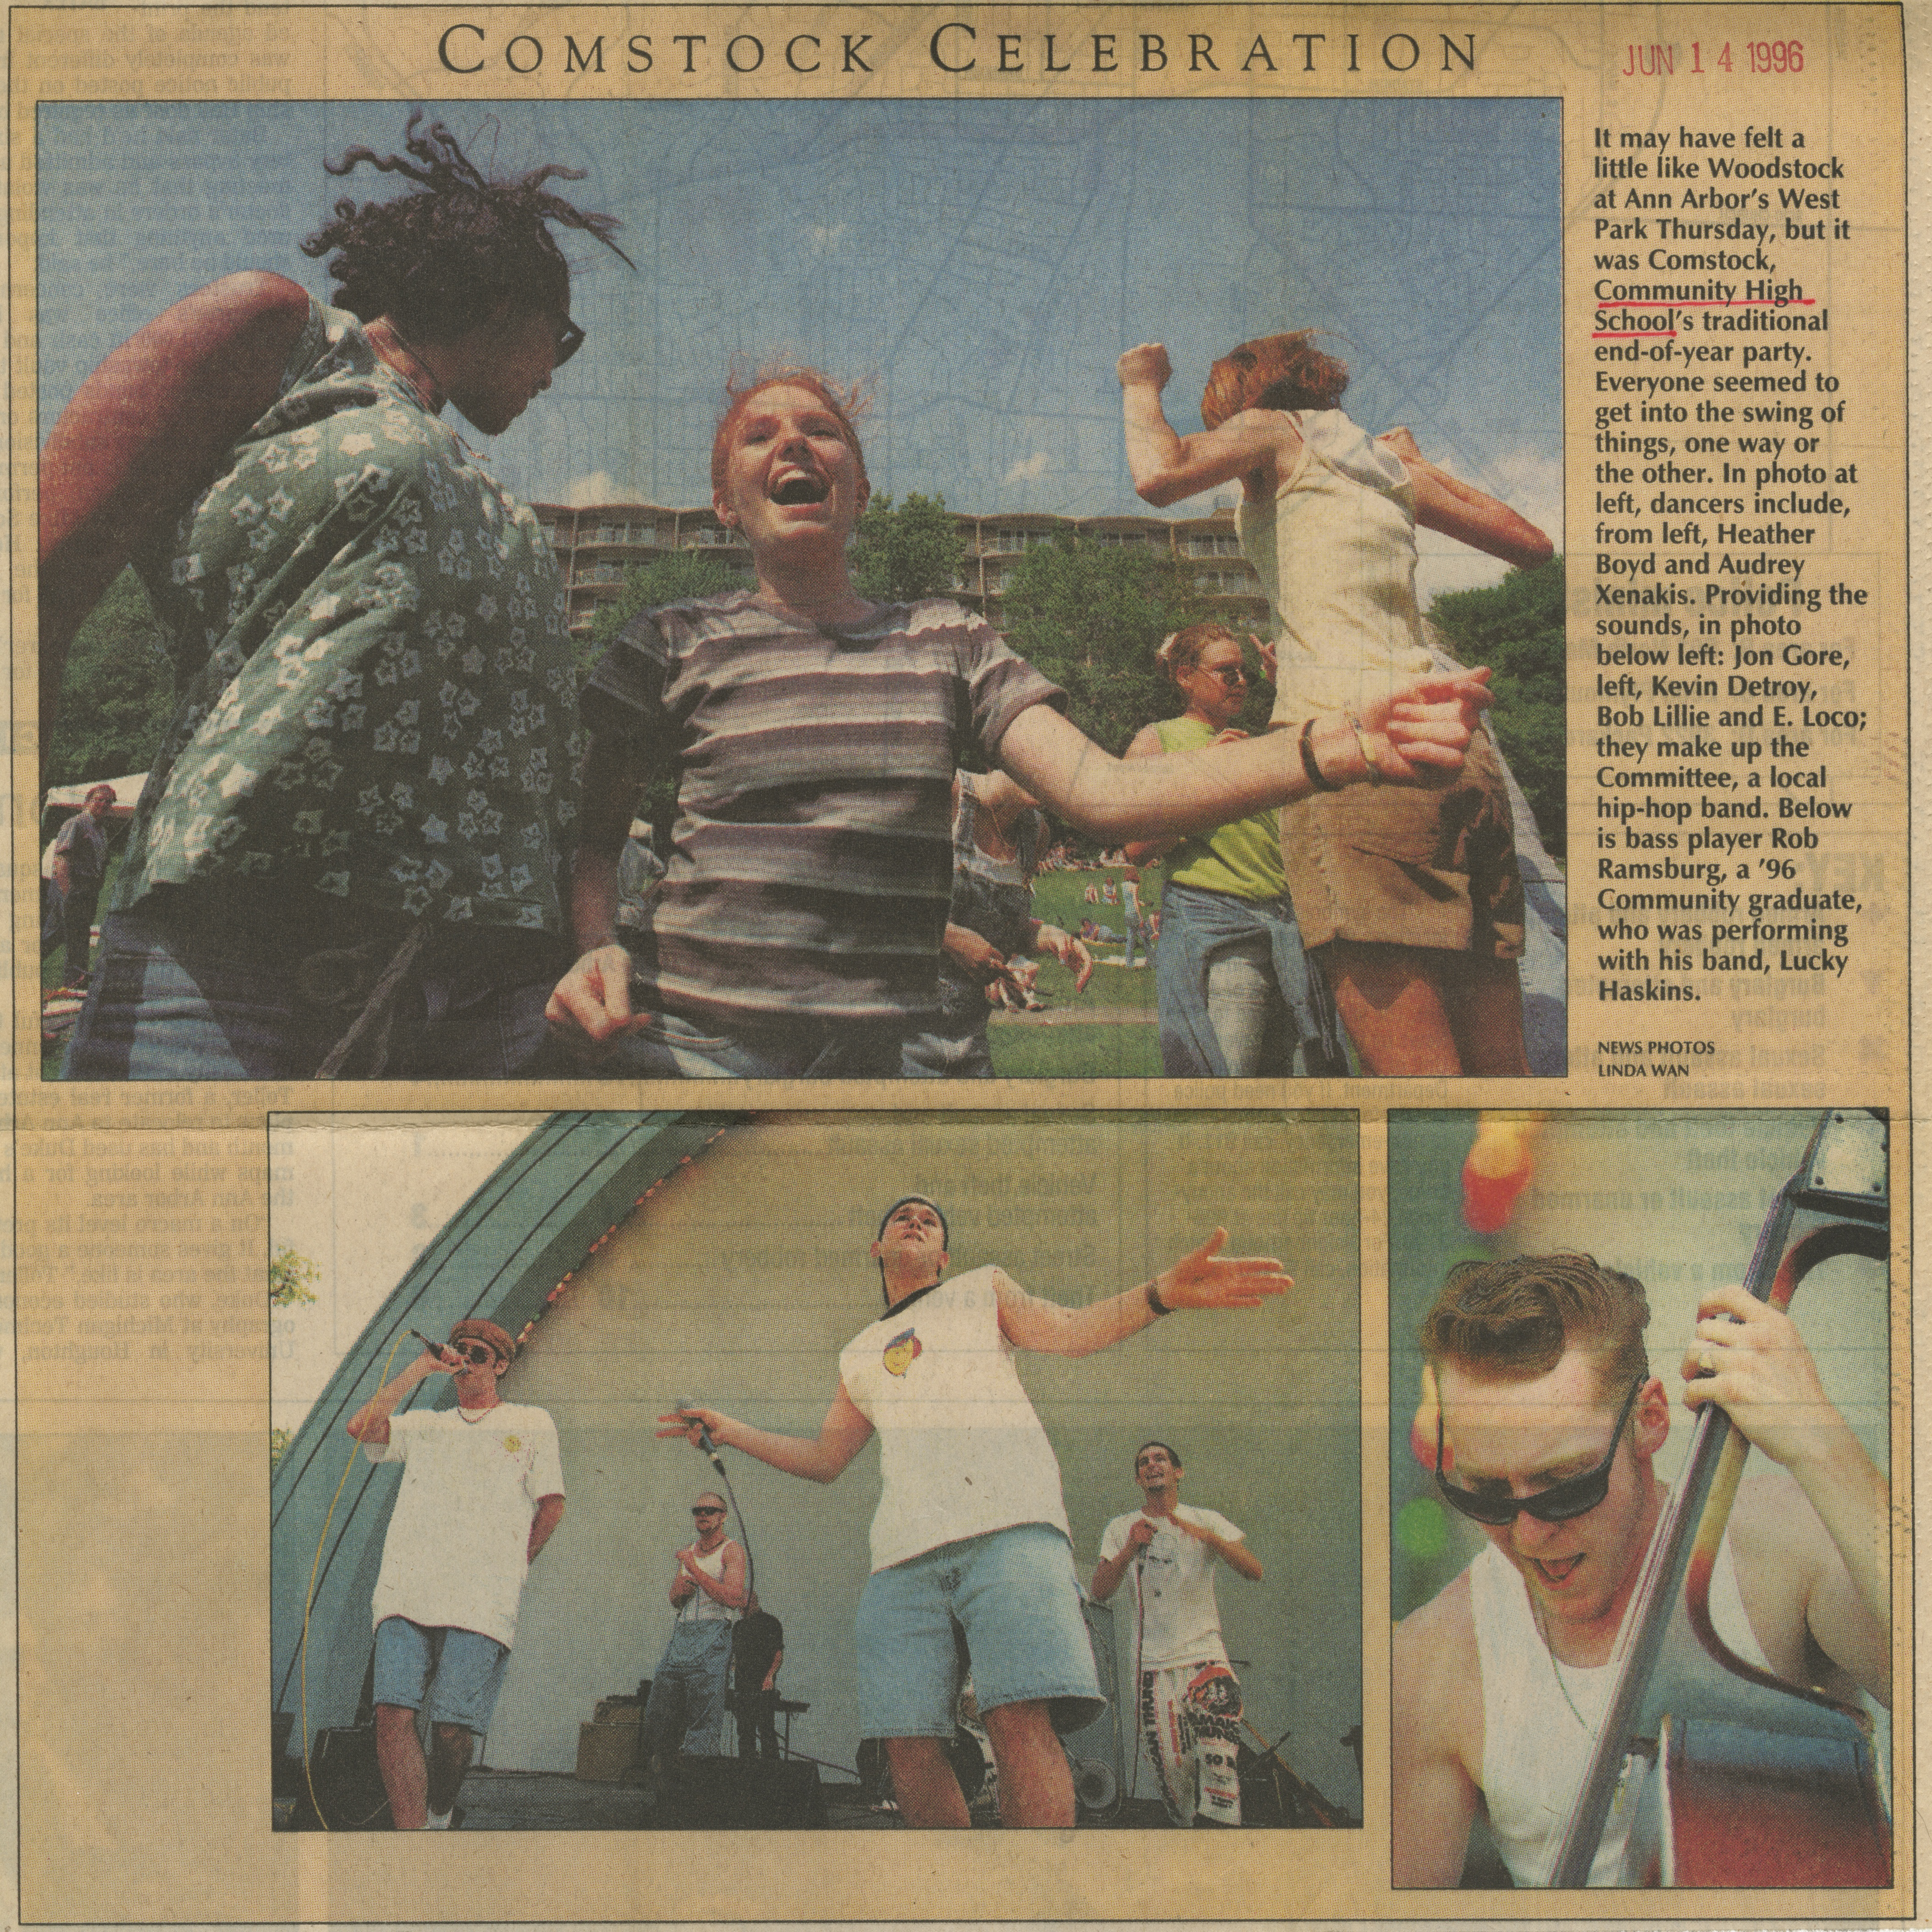 Comstock Celebration image